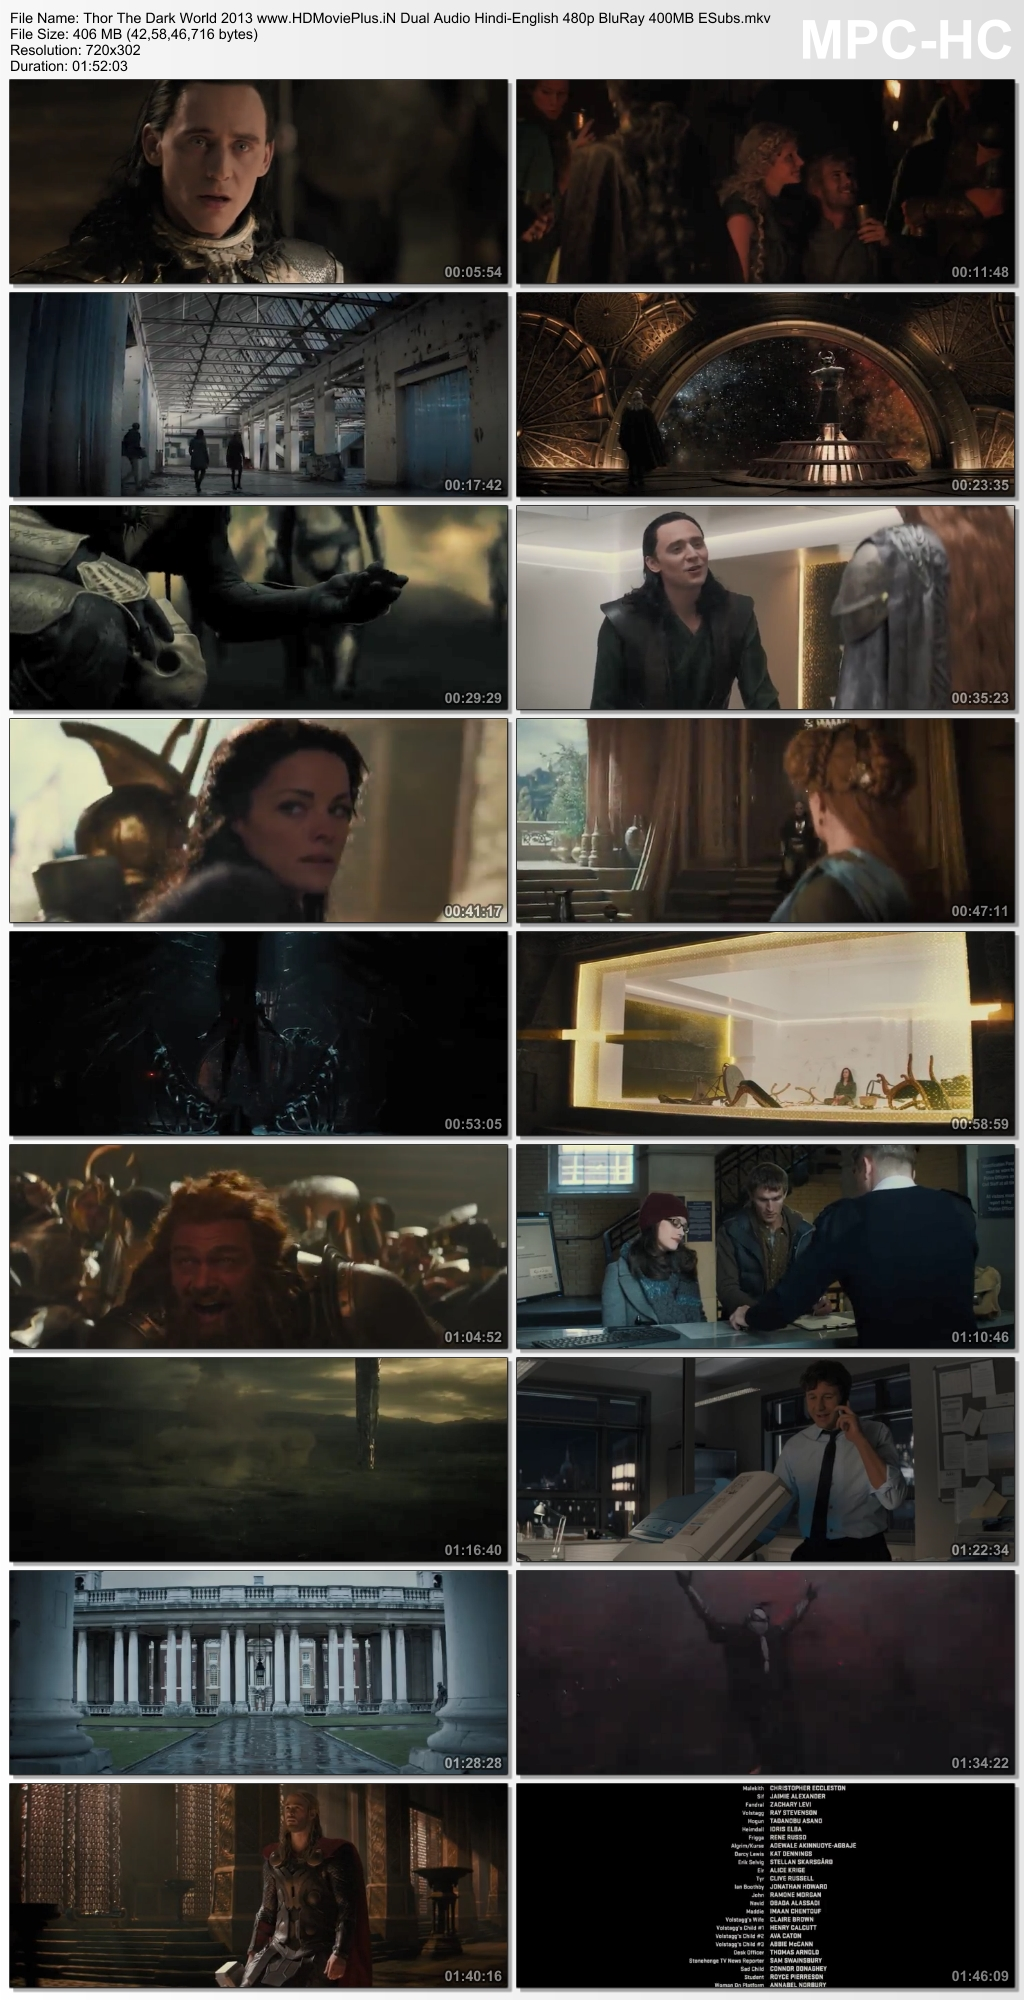 Thor: The Dark World 2013 Dual Audio